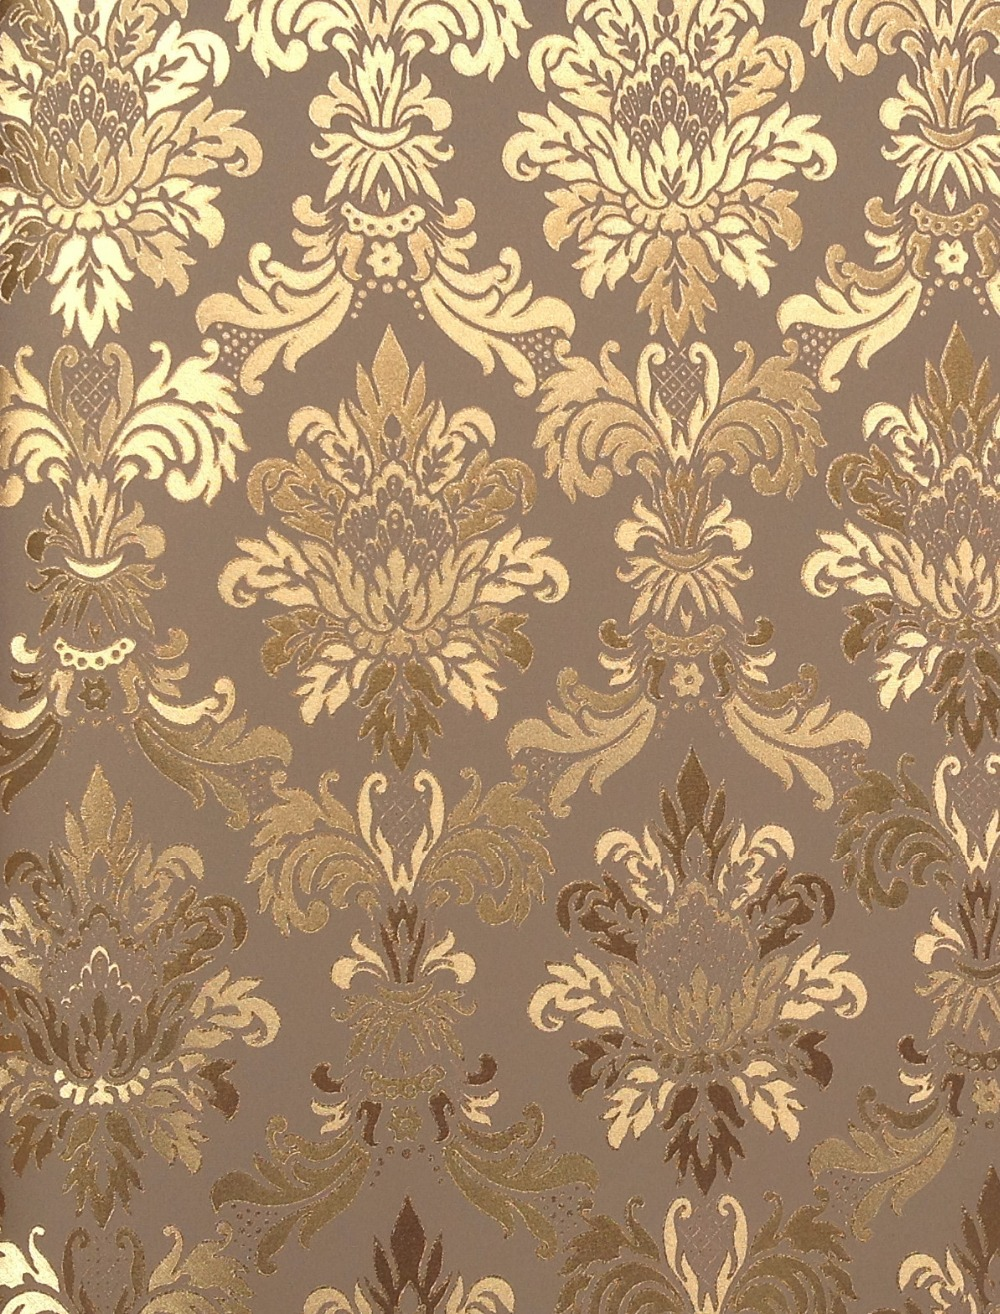 Cy222 gold foil wall paper chinese style vinyl wall paper for Wall to wall paper